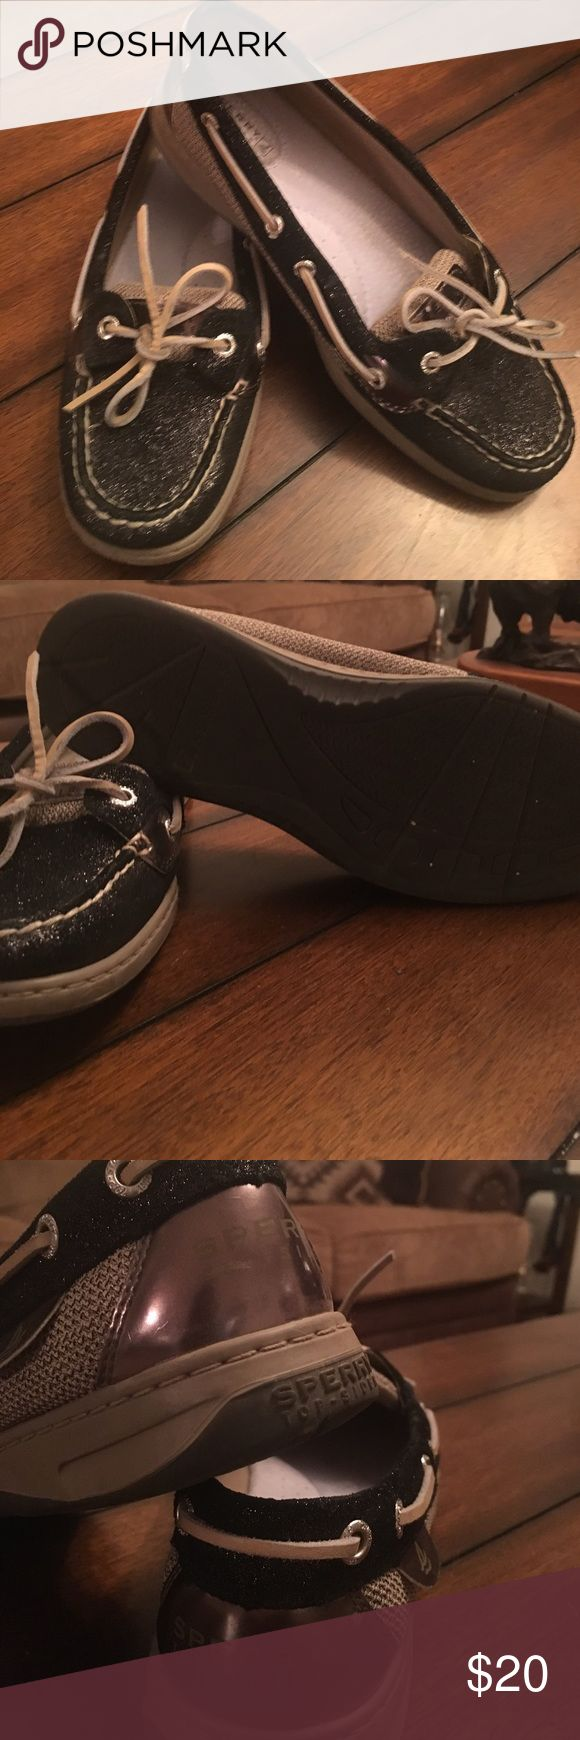 Black Sperry Top - Sider Beautiful sparkly black & metallic boat shoes in excellent condition. Sperry Top-Sider Shoes Flats & Loafers